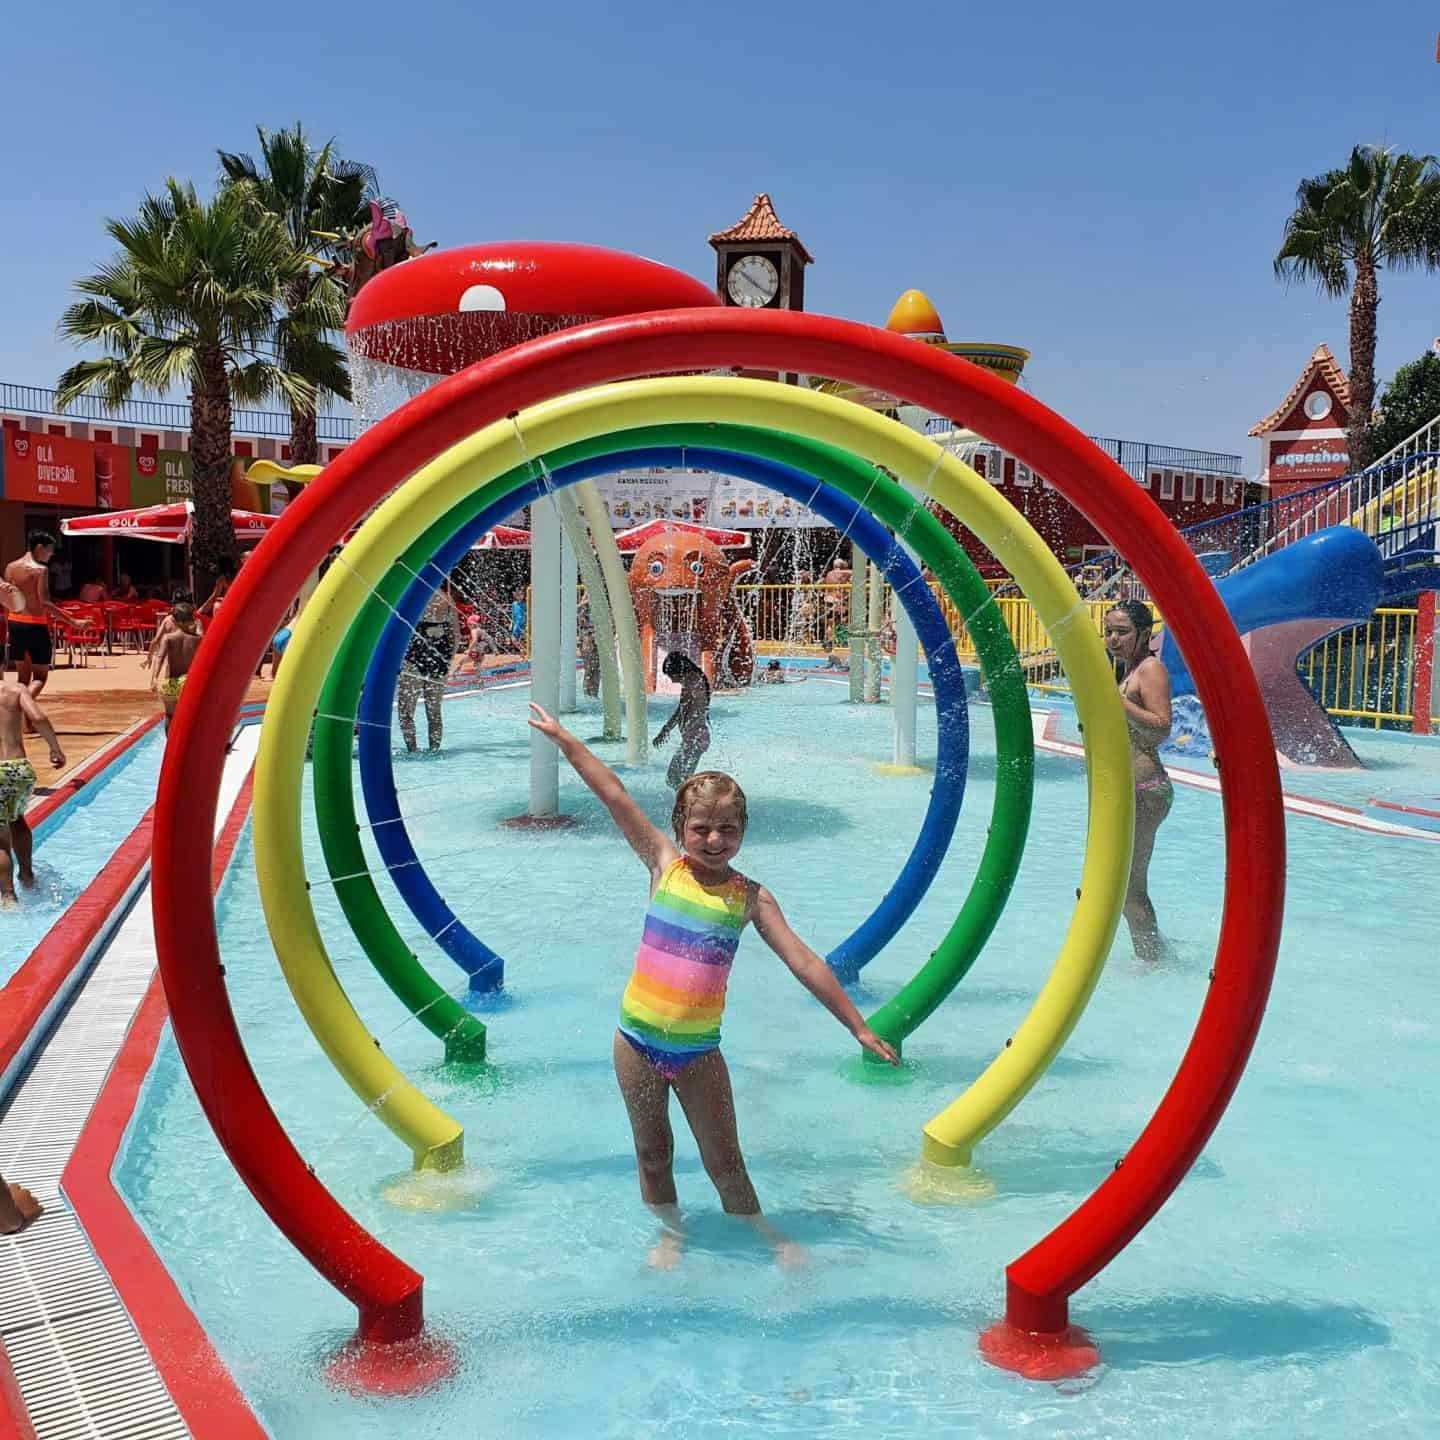 AquaShow water park, Portugal - fun for all ages